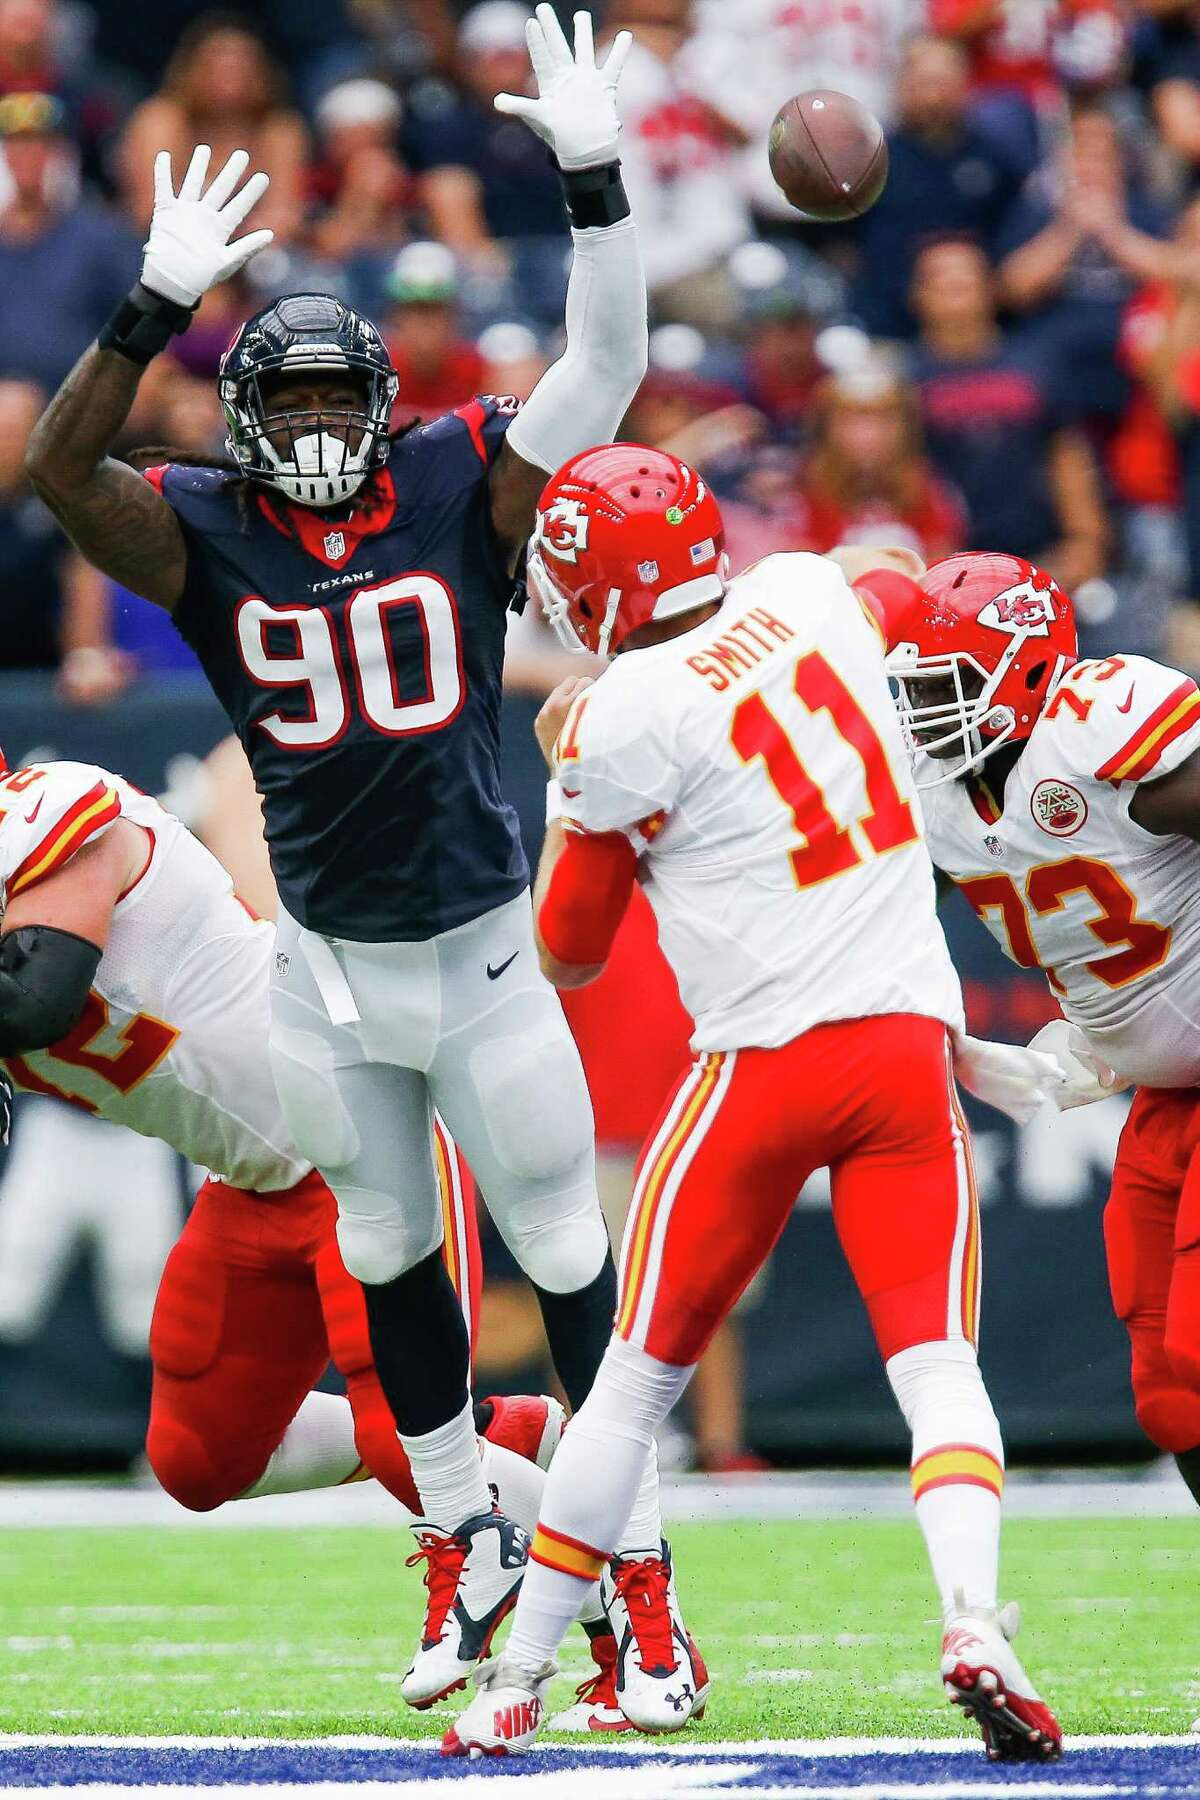 With fellow defensive end J.J. Watt on injured reserve, Jadeveon Clowney, left, has helped pick up the slack for a unit ranked second in the NFL against the pass but only 29th against the run.